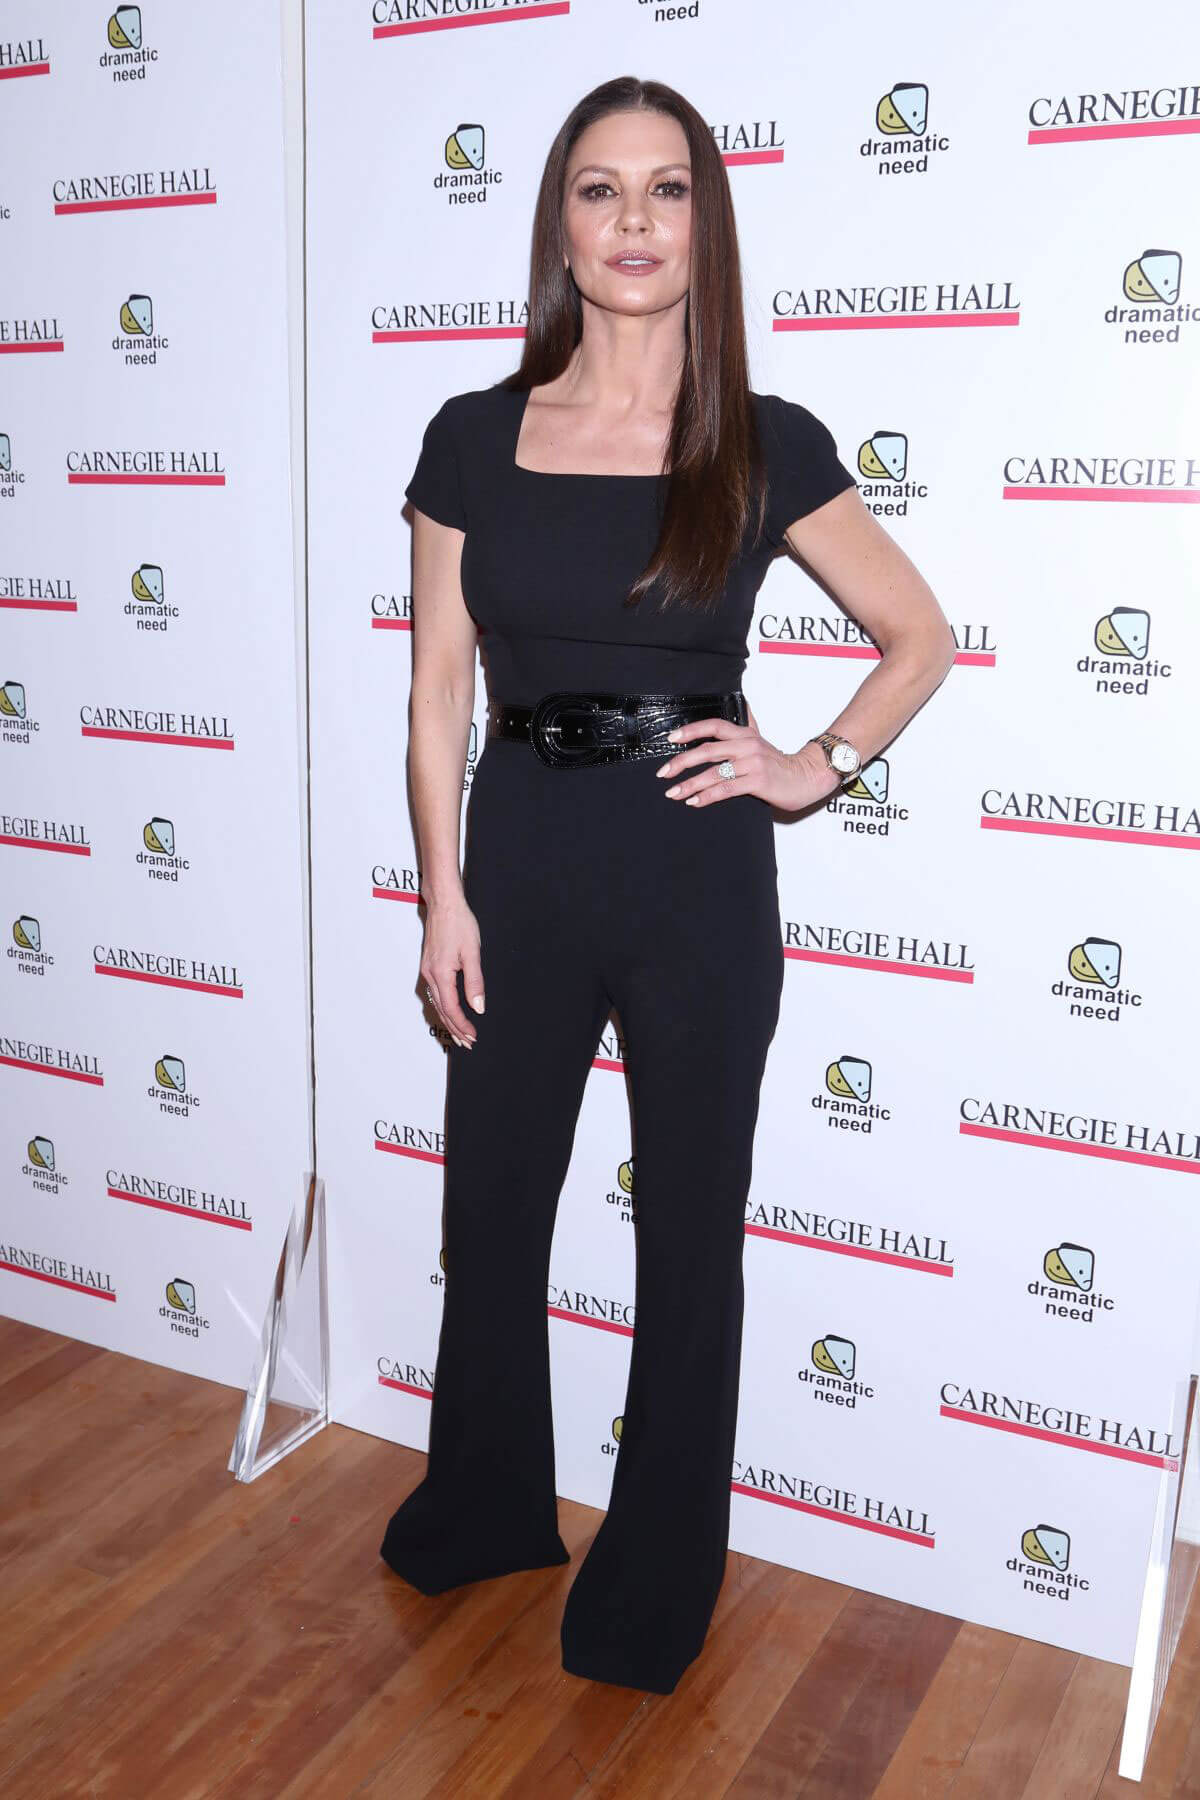 Catherine Zeta-Jones Stills at The Children's Monologues at Carnegie Hall in New York